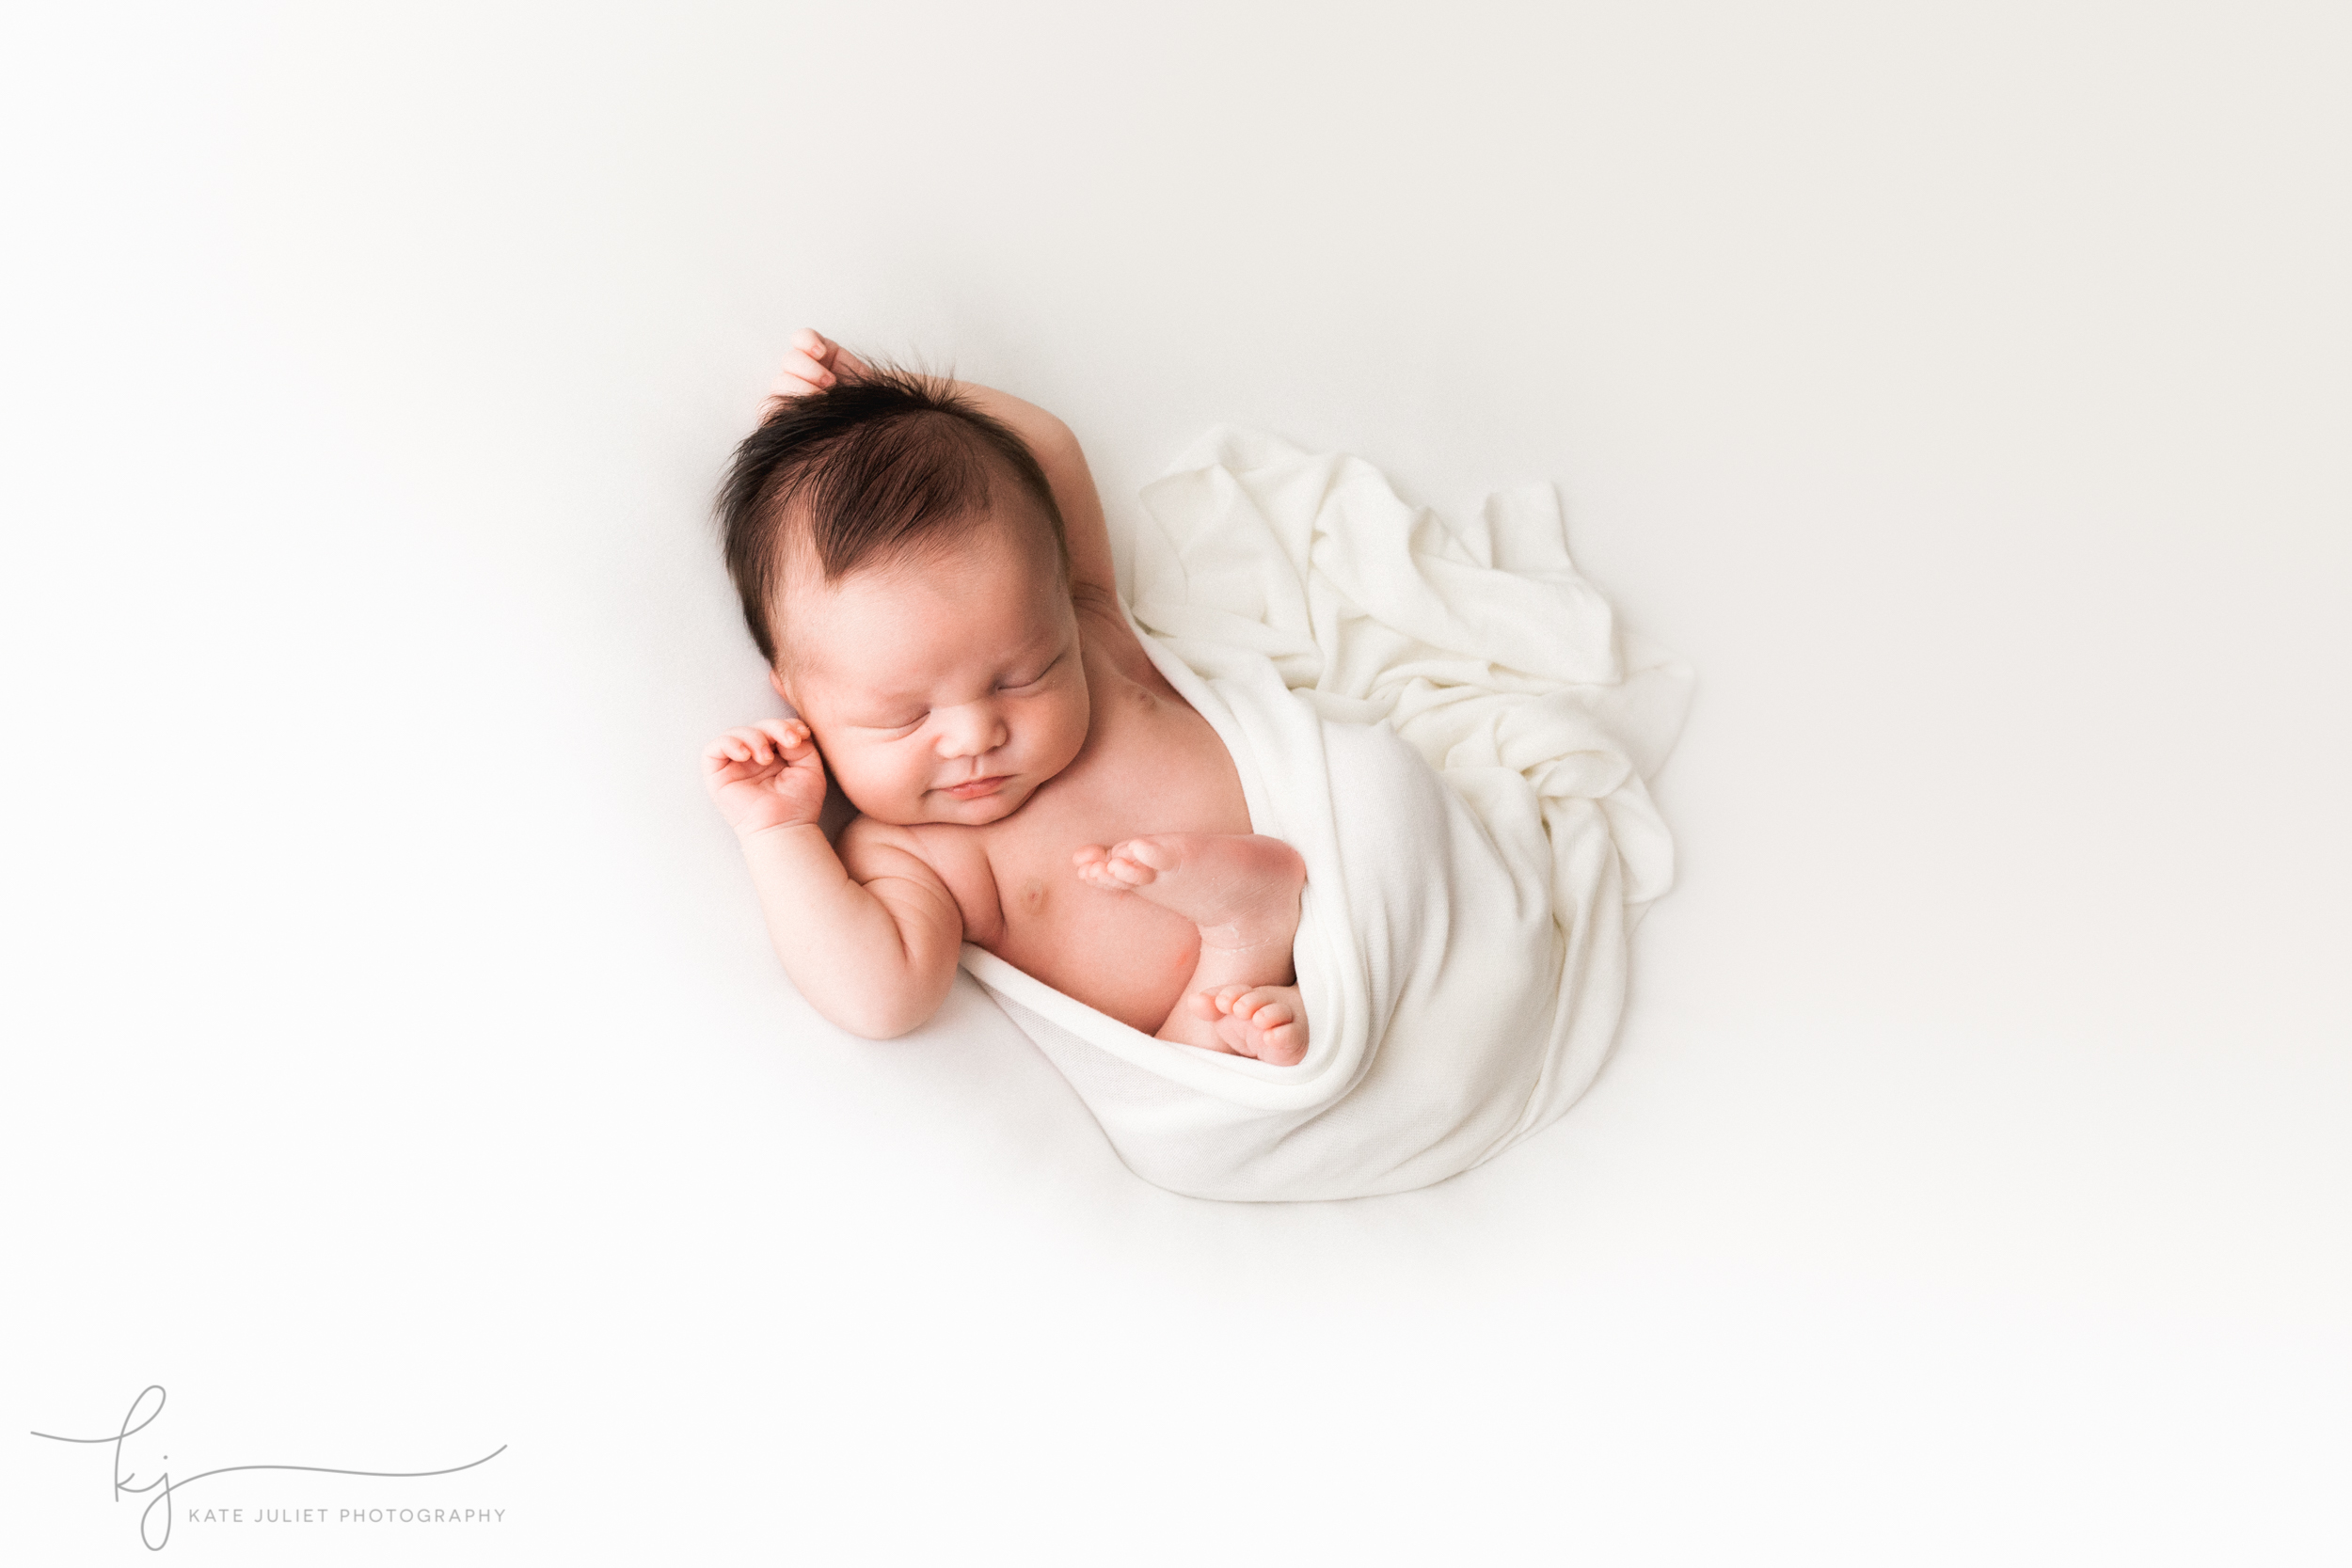 kate_juliet_photography_northern_va_newborn_057977_wm.jpg